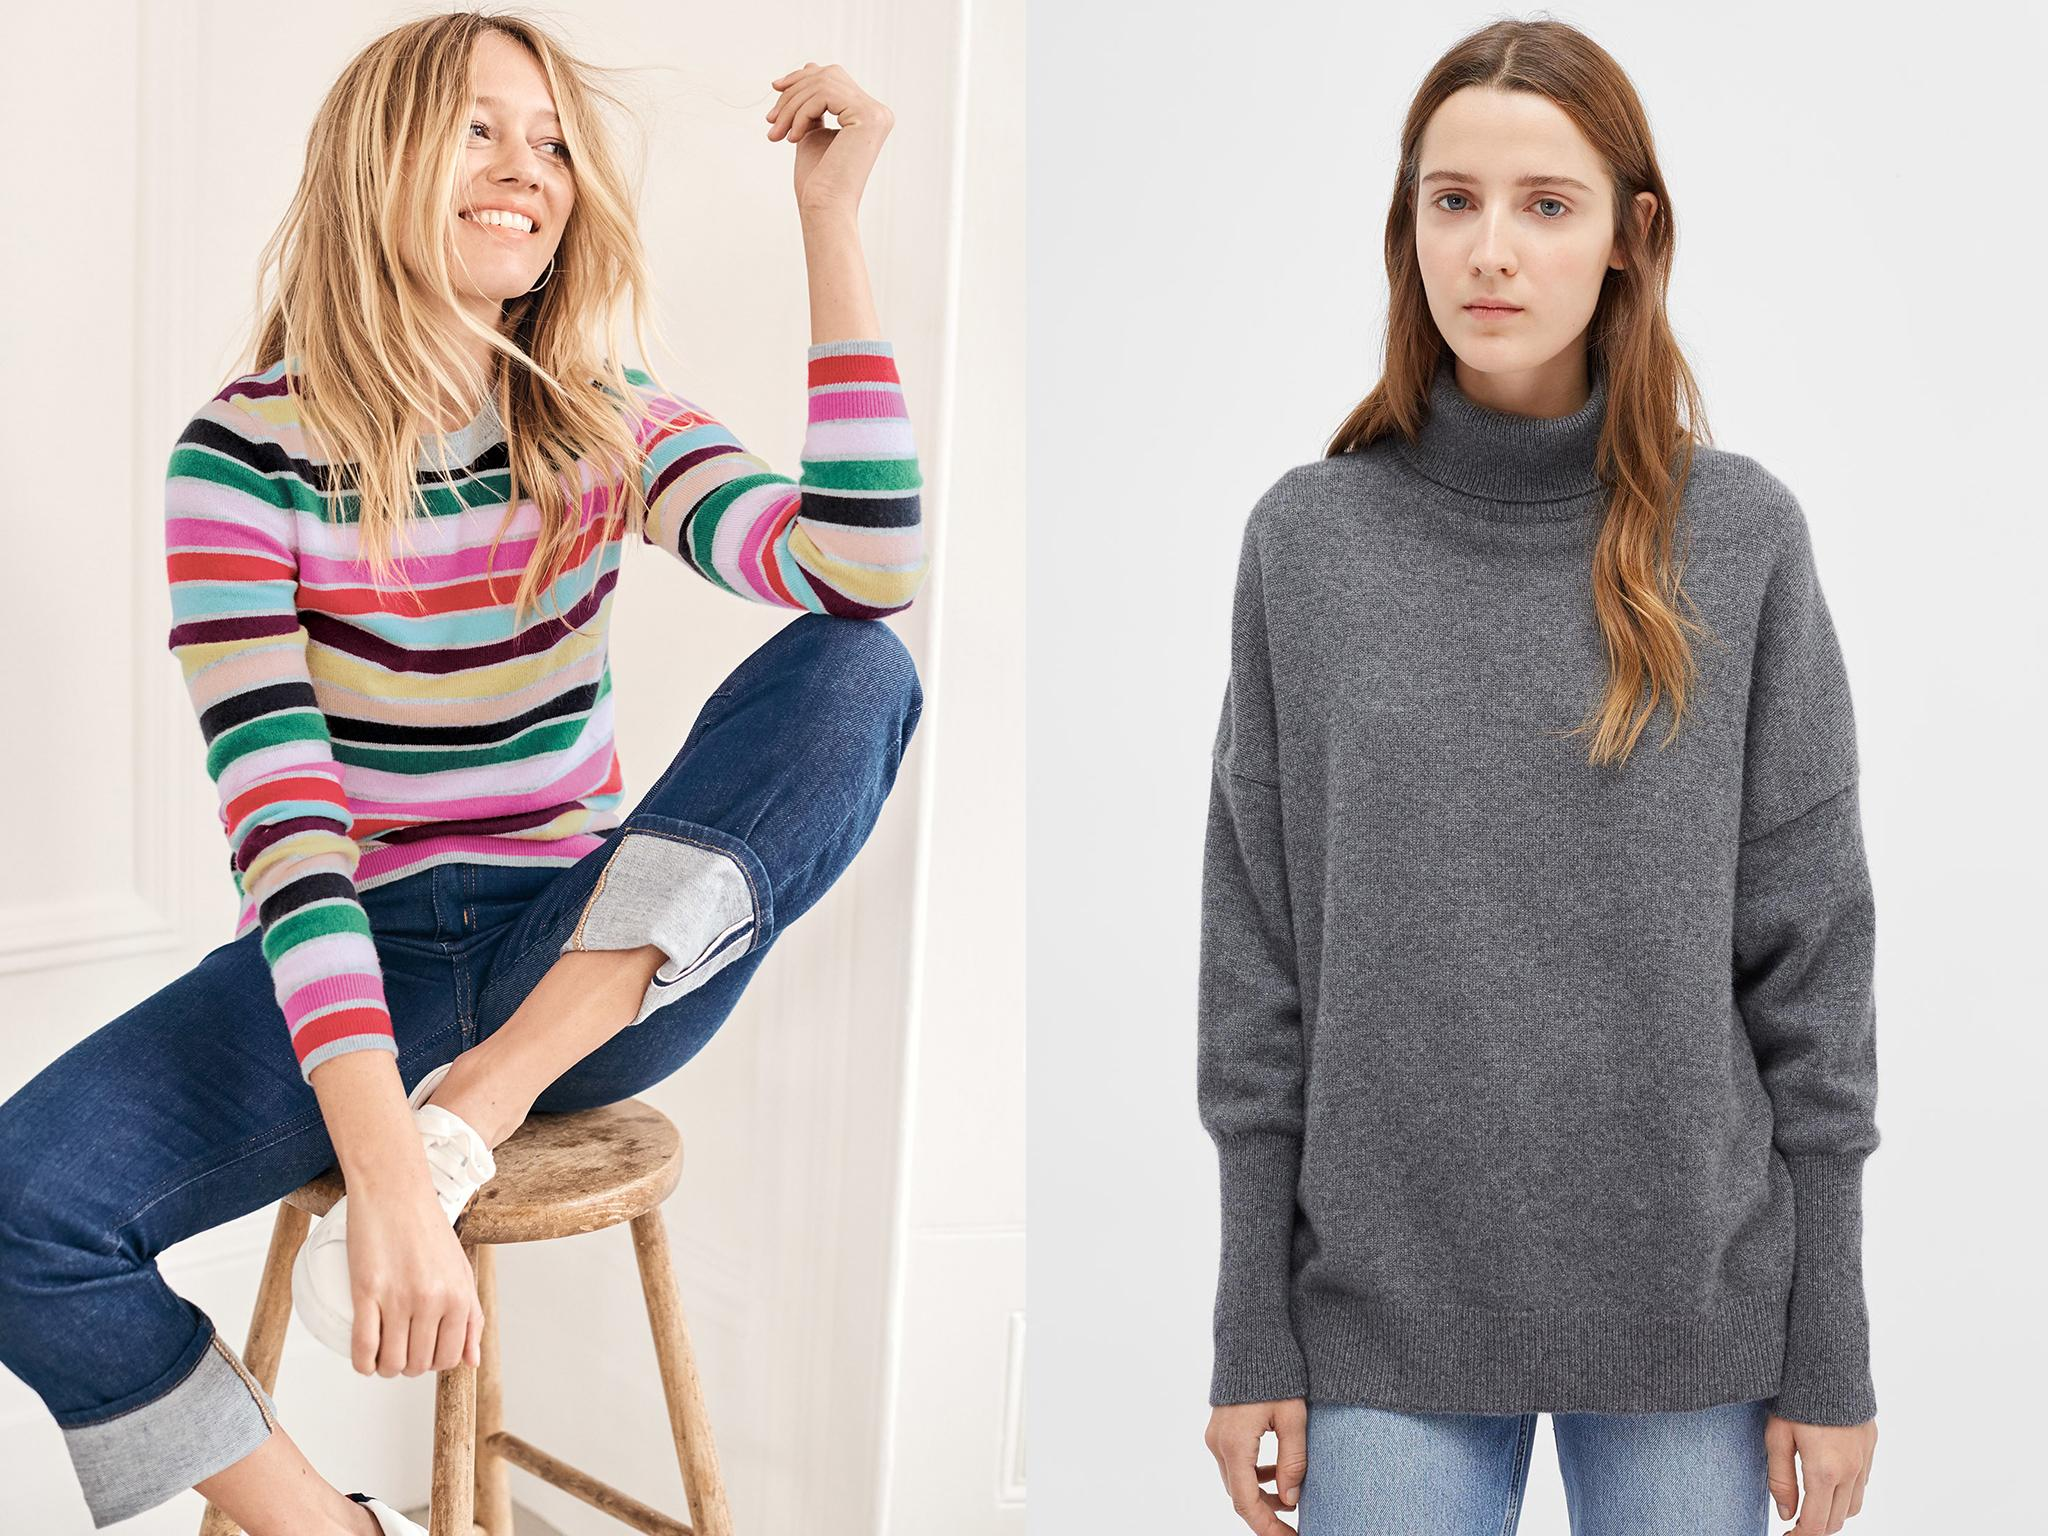 382261c4f63d 10 best cashmere jumpers for women